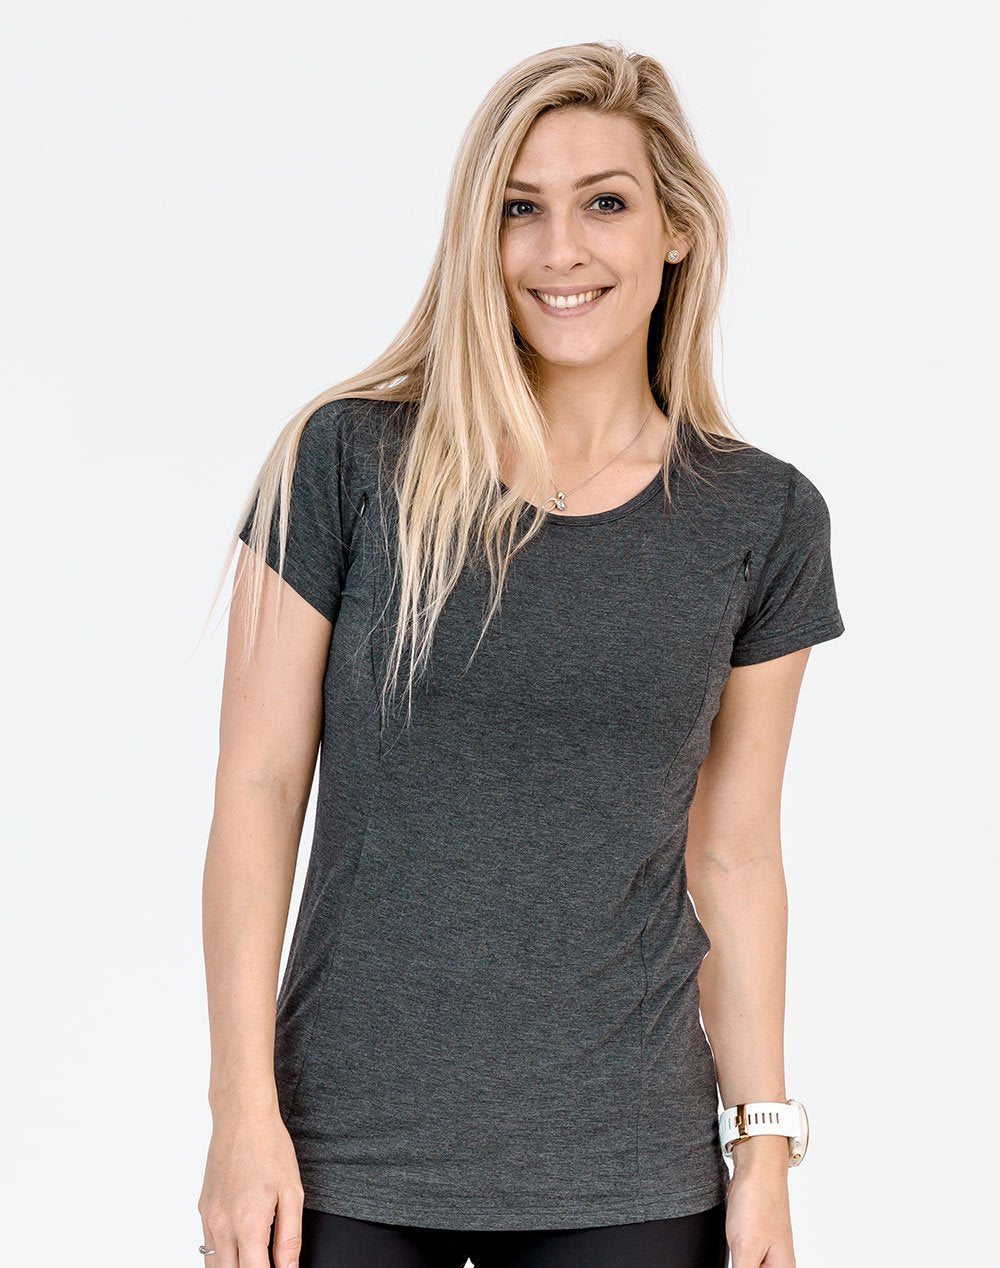 active mom wearing a gray breastfeeding t-shirt